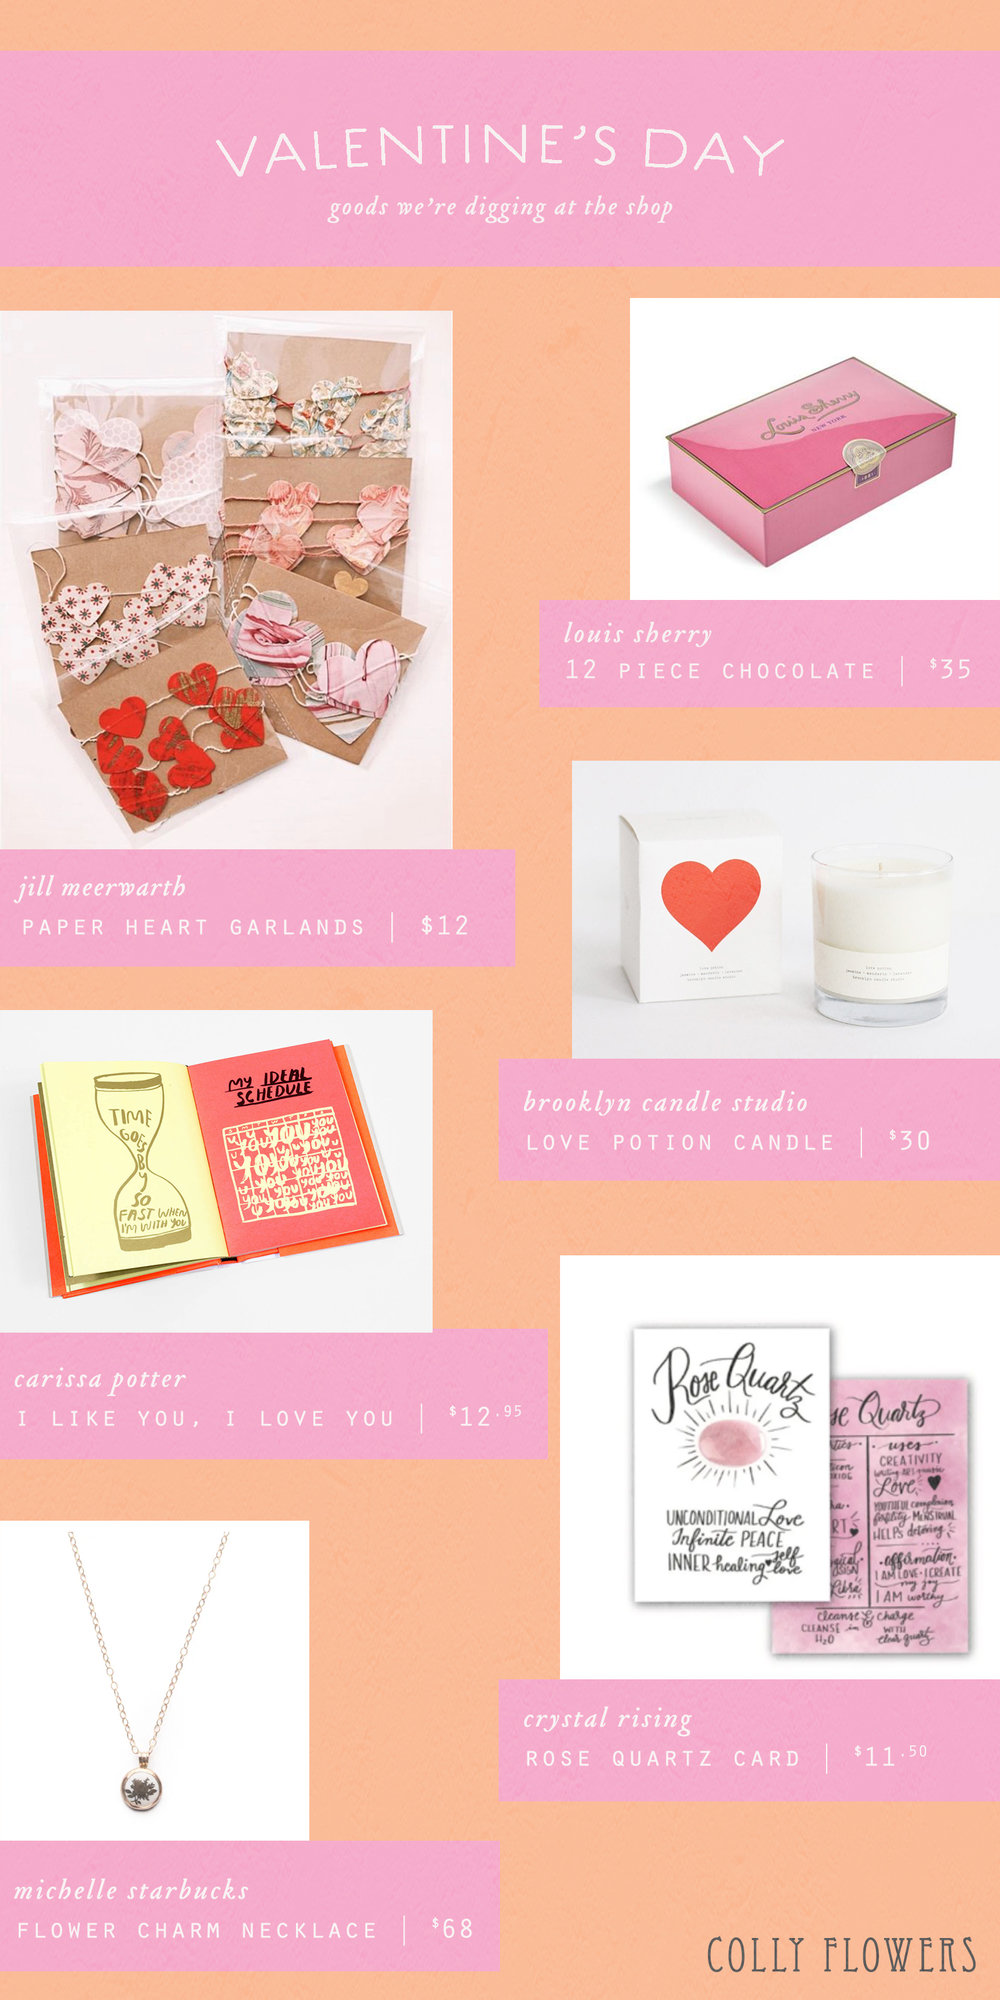 colly flowers | gifts for valentine's day | morristown, nj